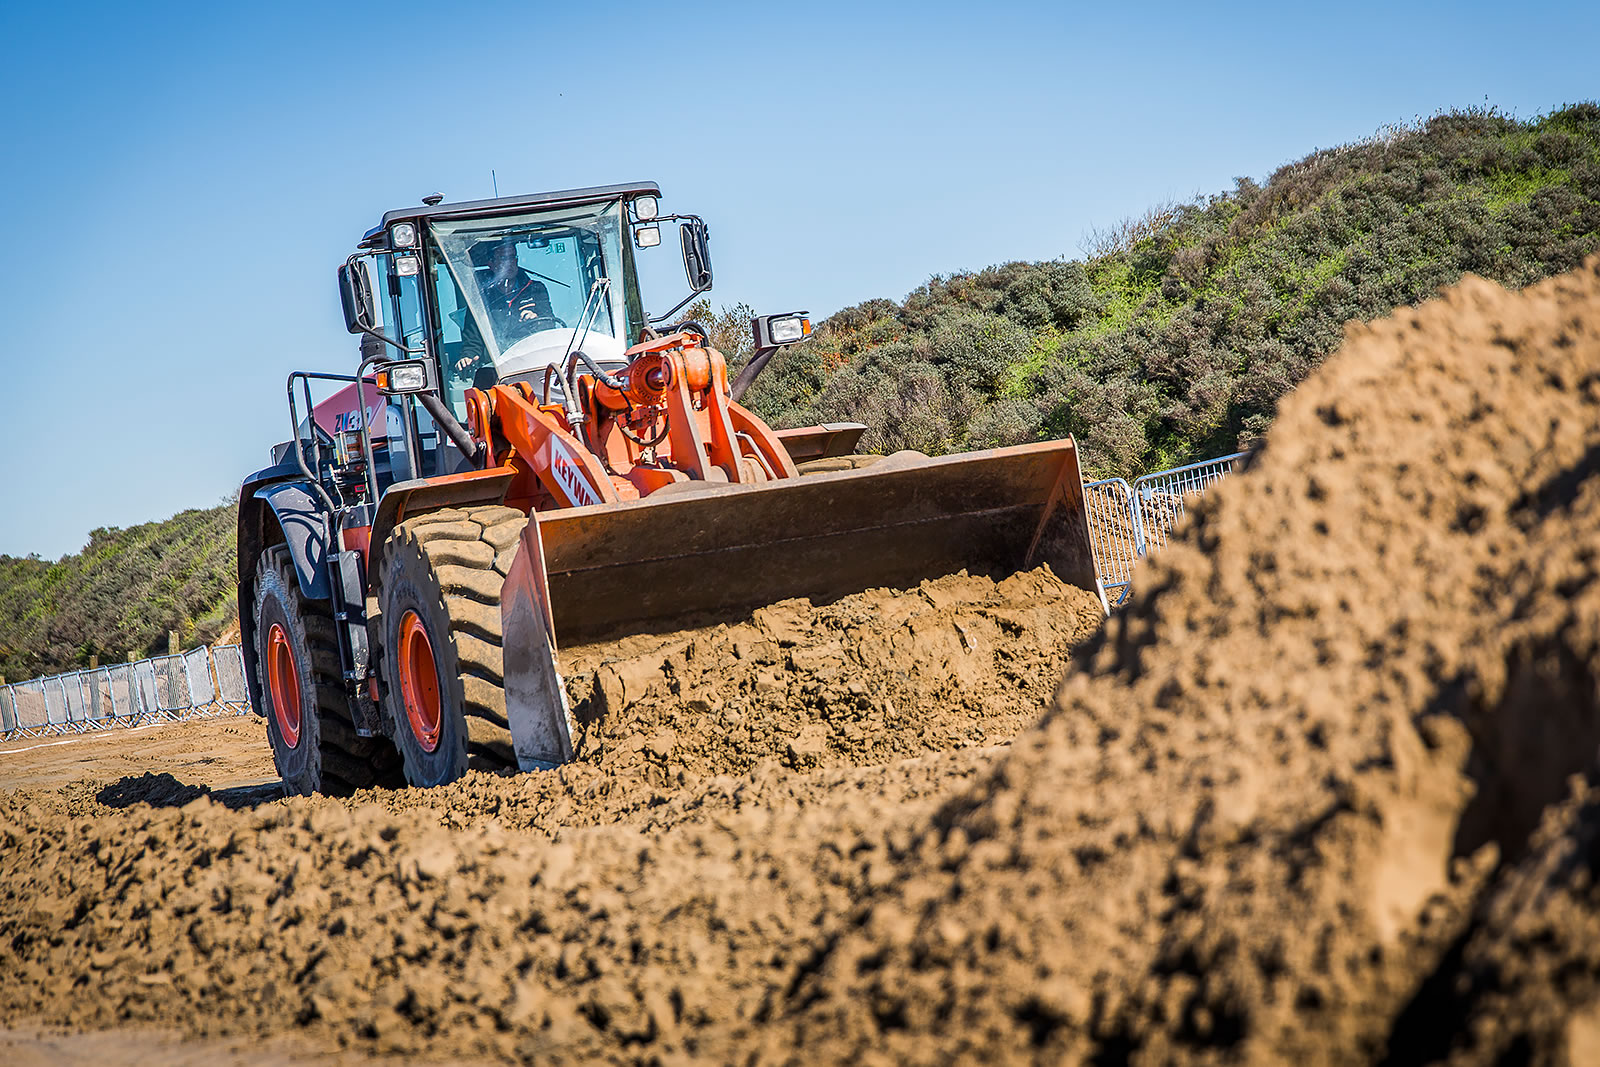 Hitachi ZW310-6 wheel loader with a standard 4.3m3 bucket moves sand